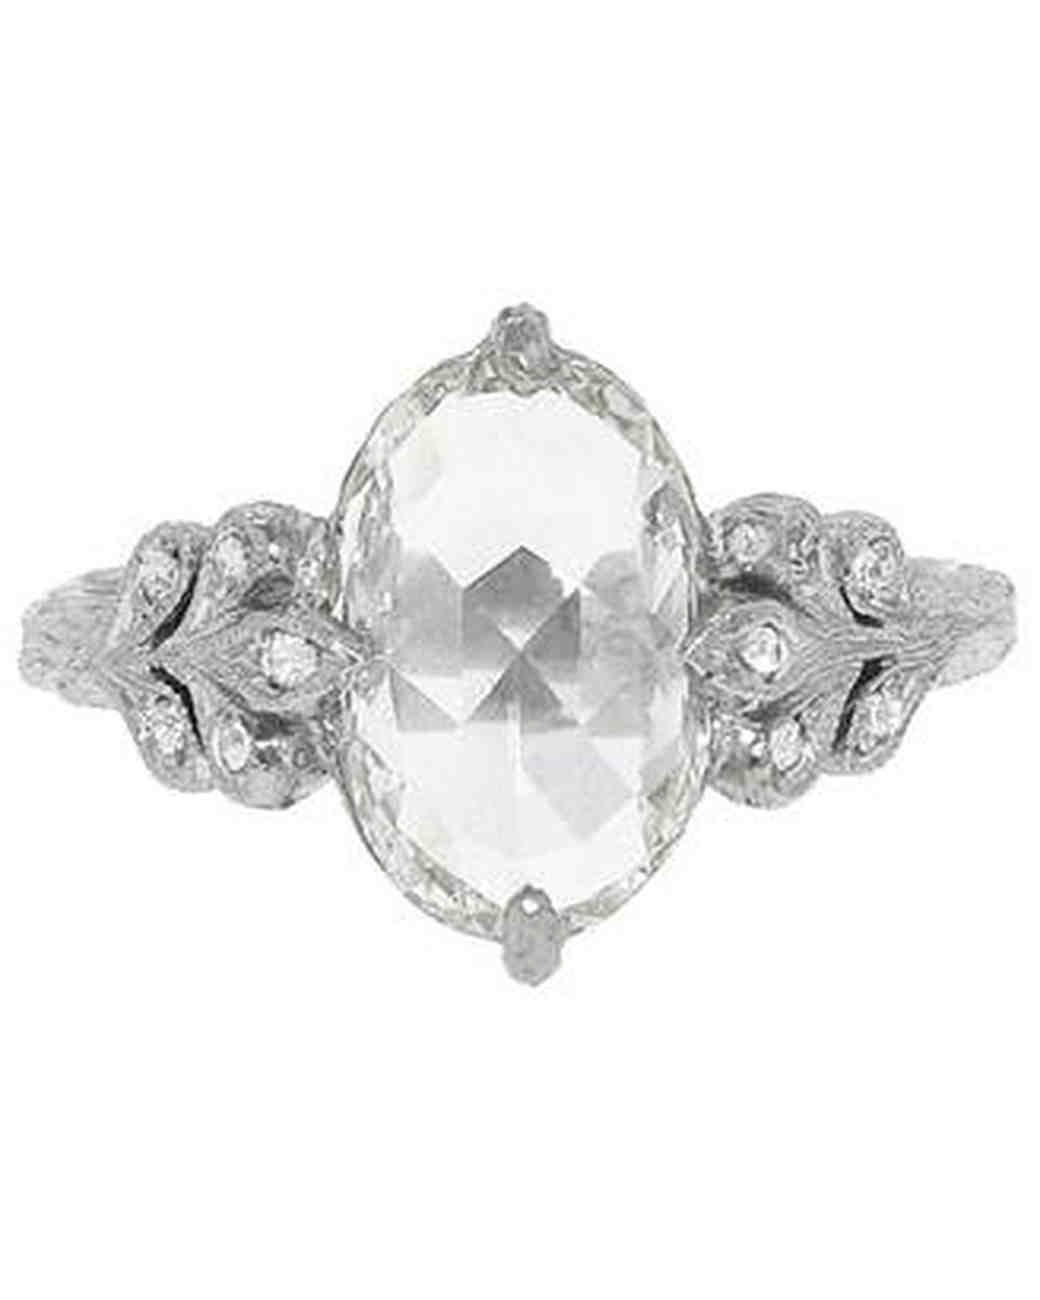 Cathy Waterman antique prong engagement ring